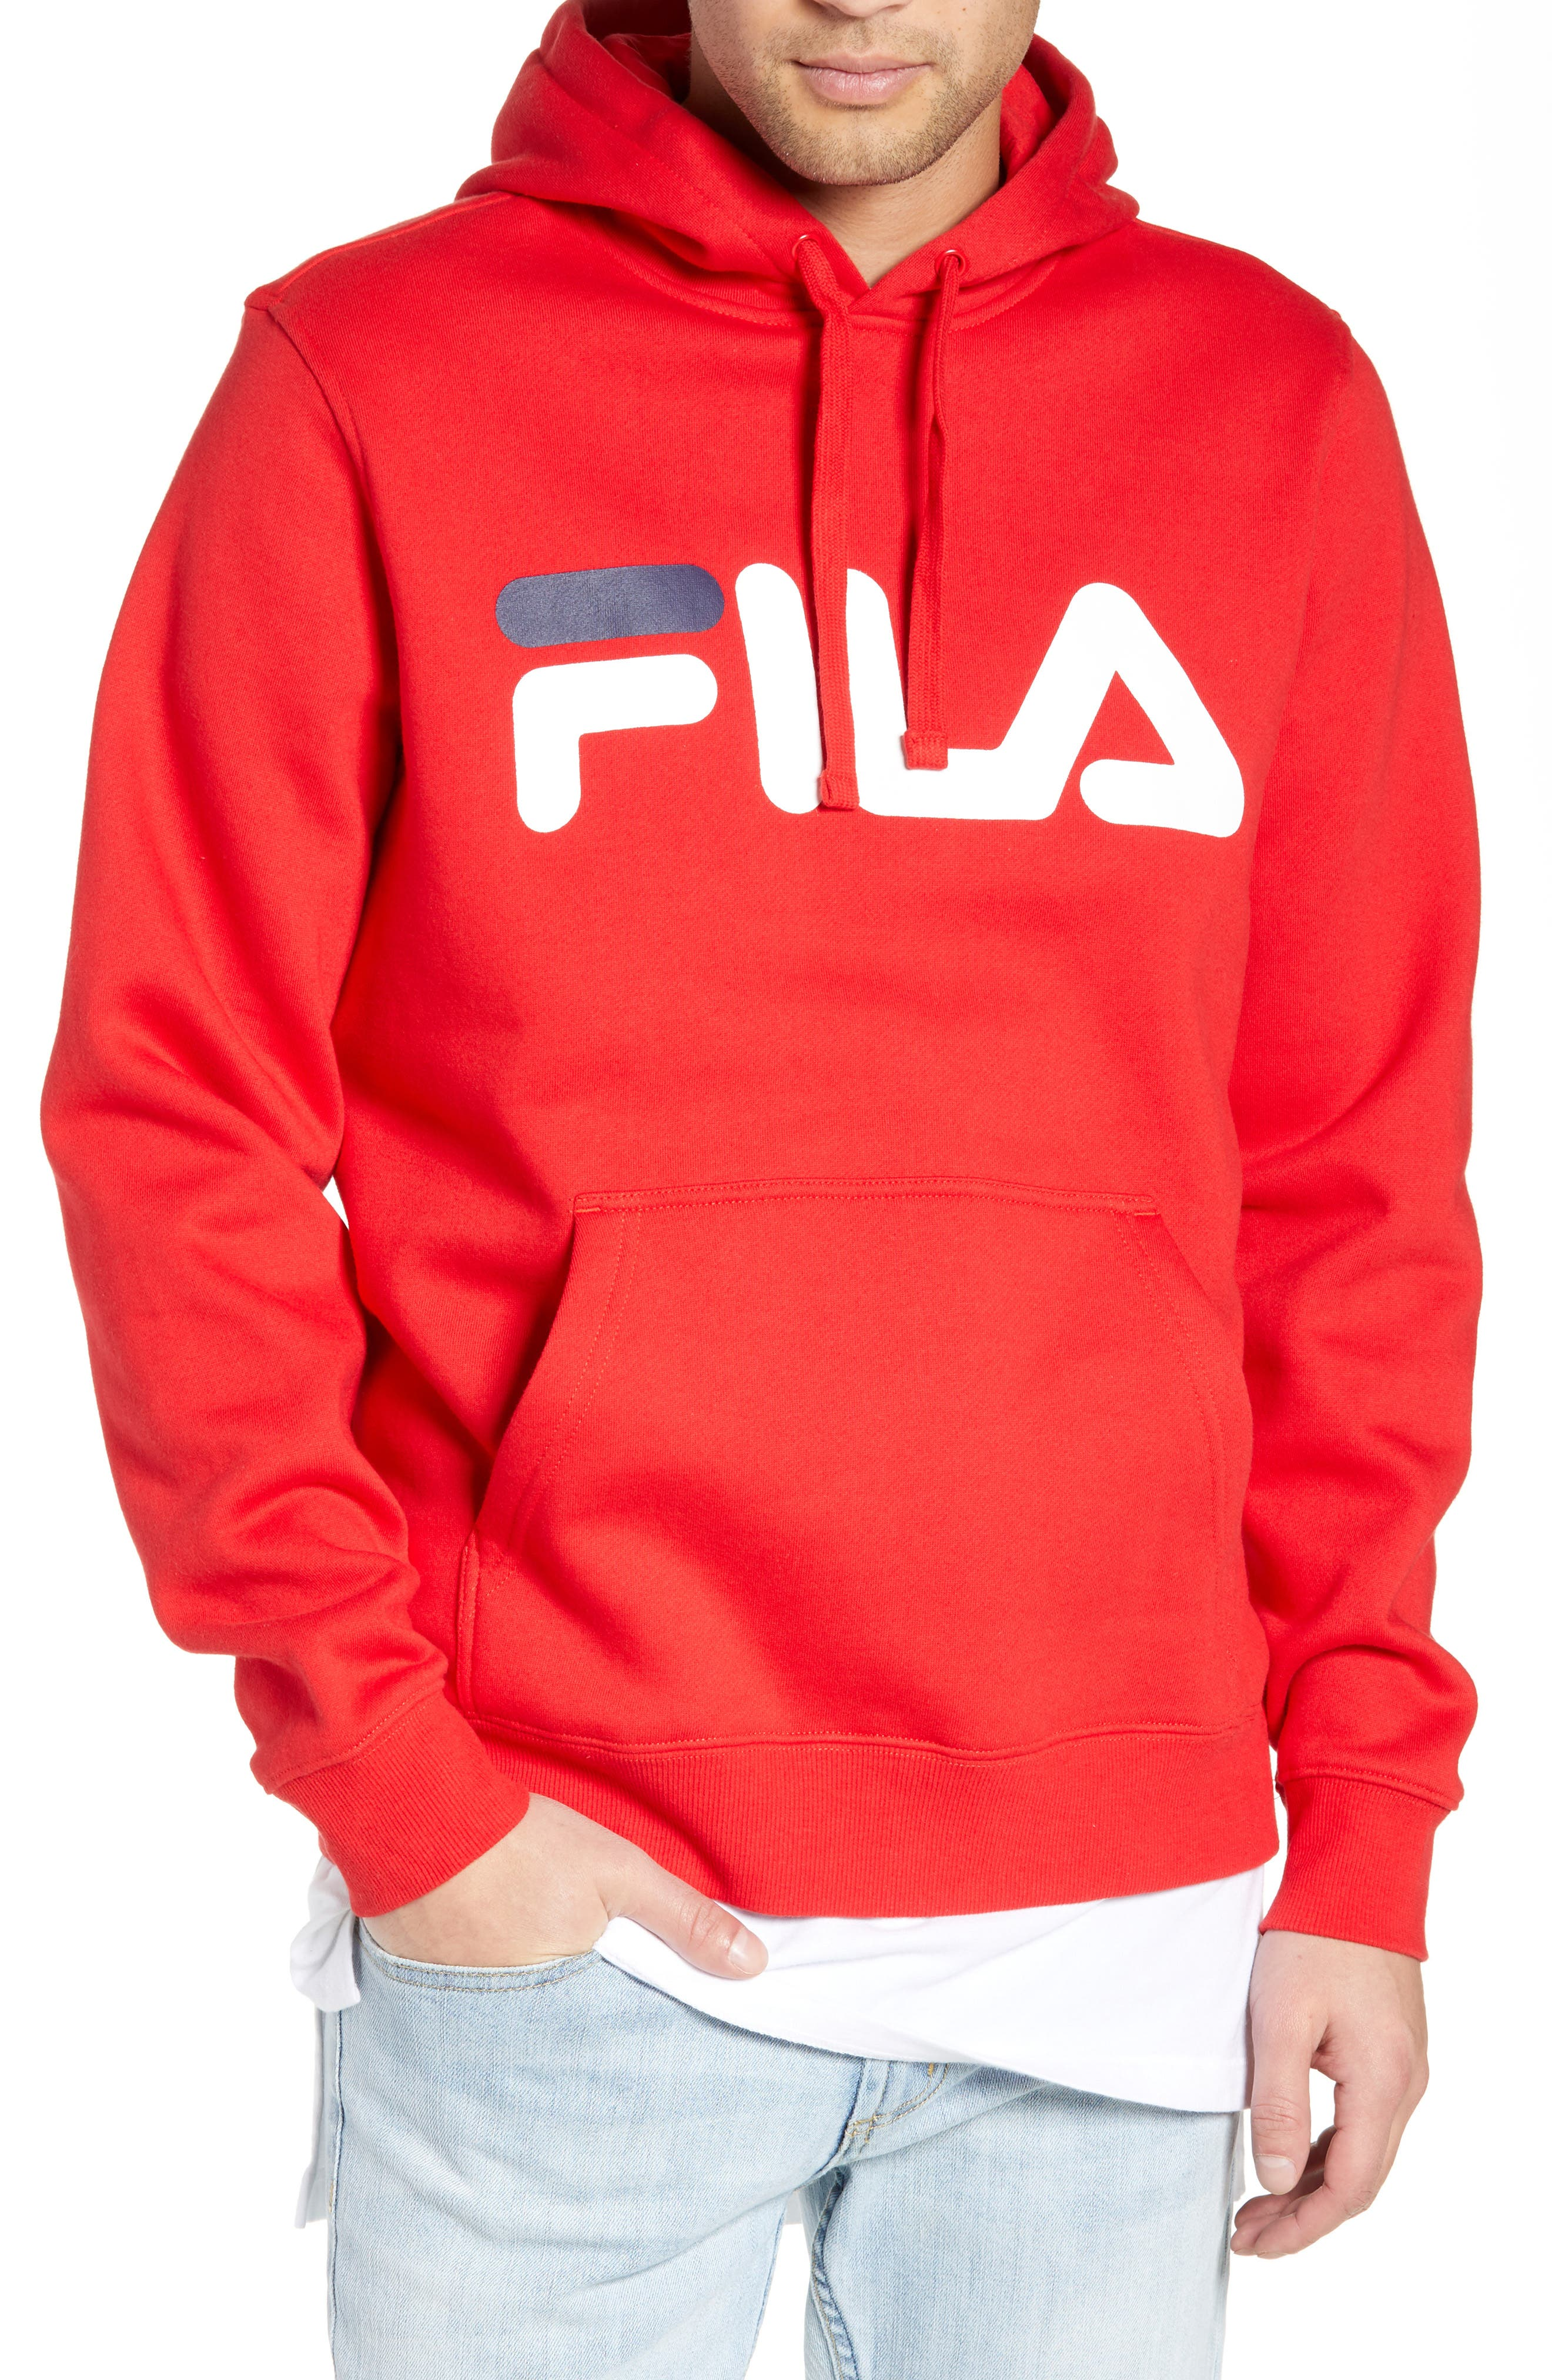 Logo Graphic Hooded Sweatshirt,                         Main,                         color, CHINESE RED/ WHITE/ NAVY